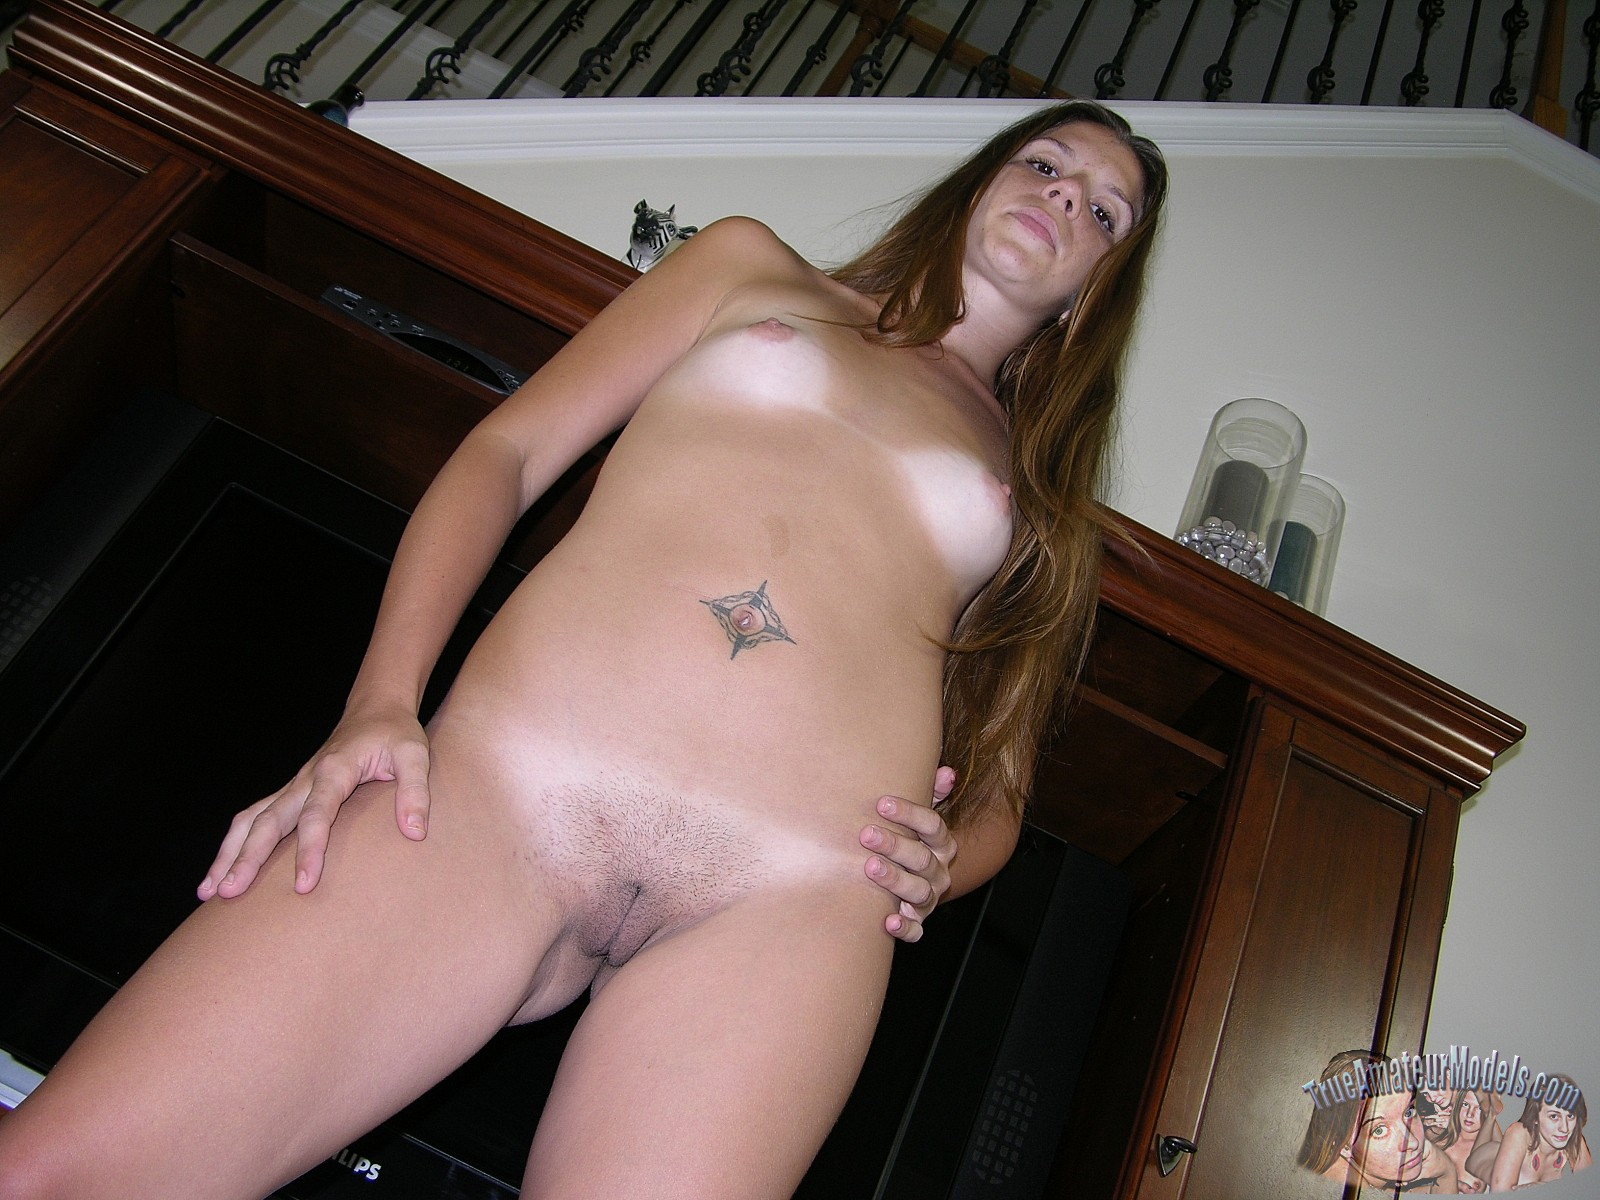 Amateur Teen With Freckles Nude - Jc Taylor-7524